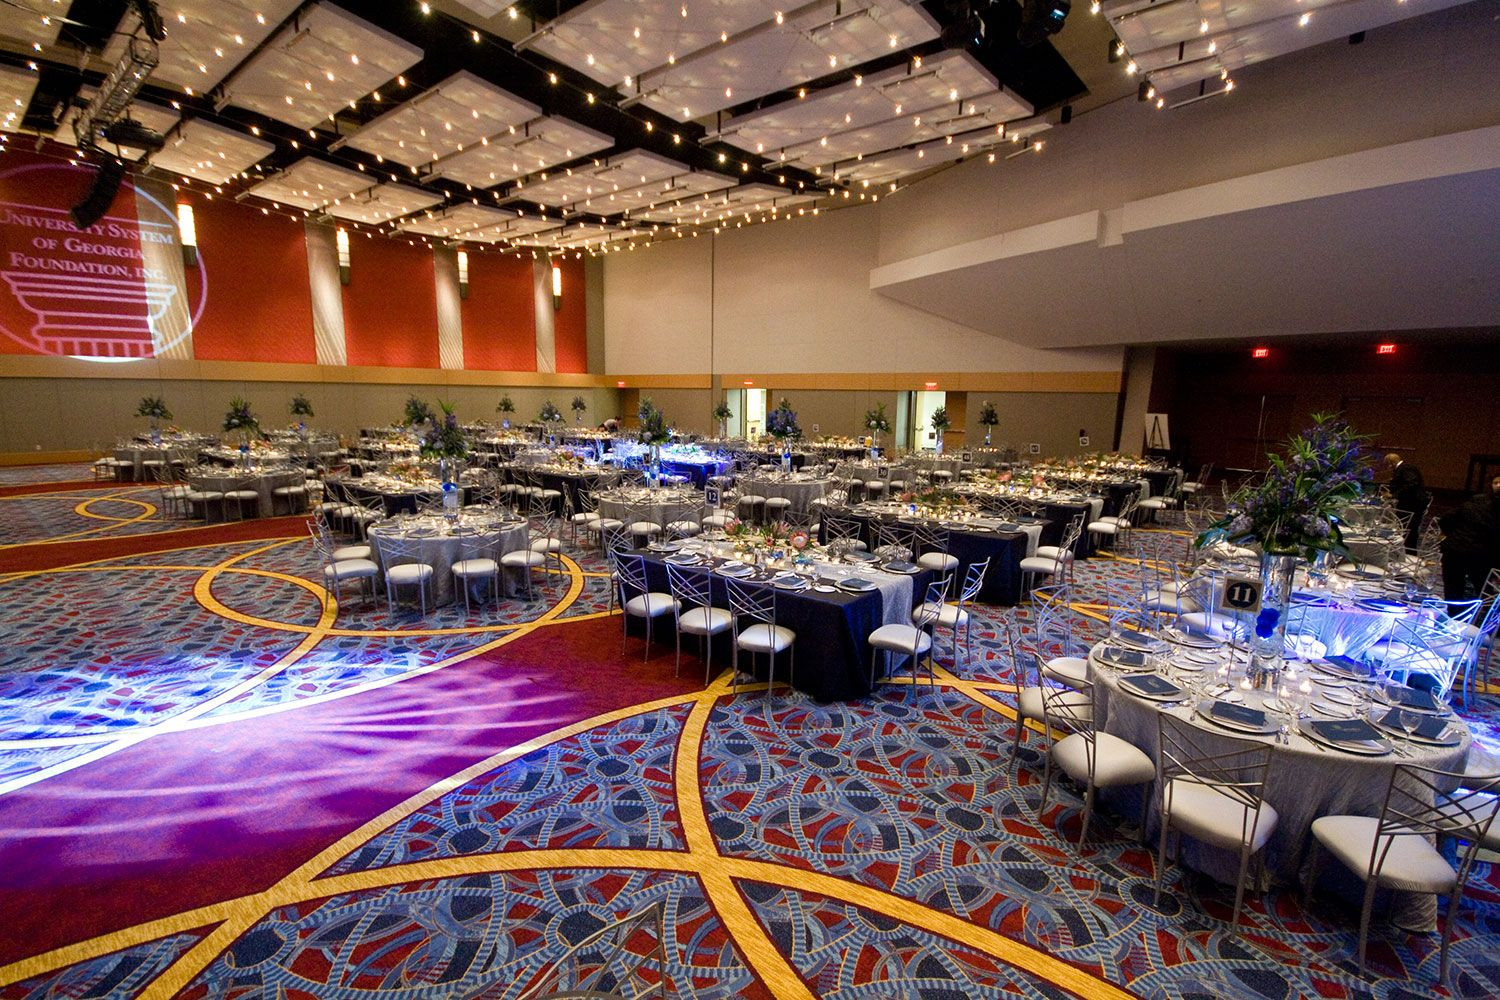 Customize your seating to any setting httpsatlanta